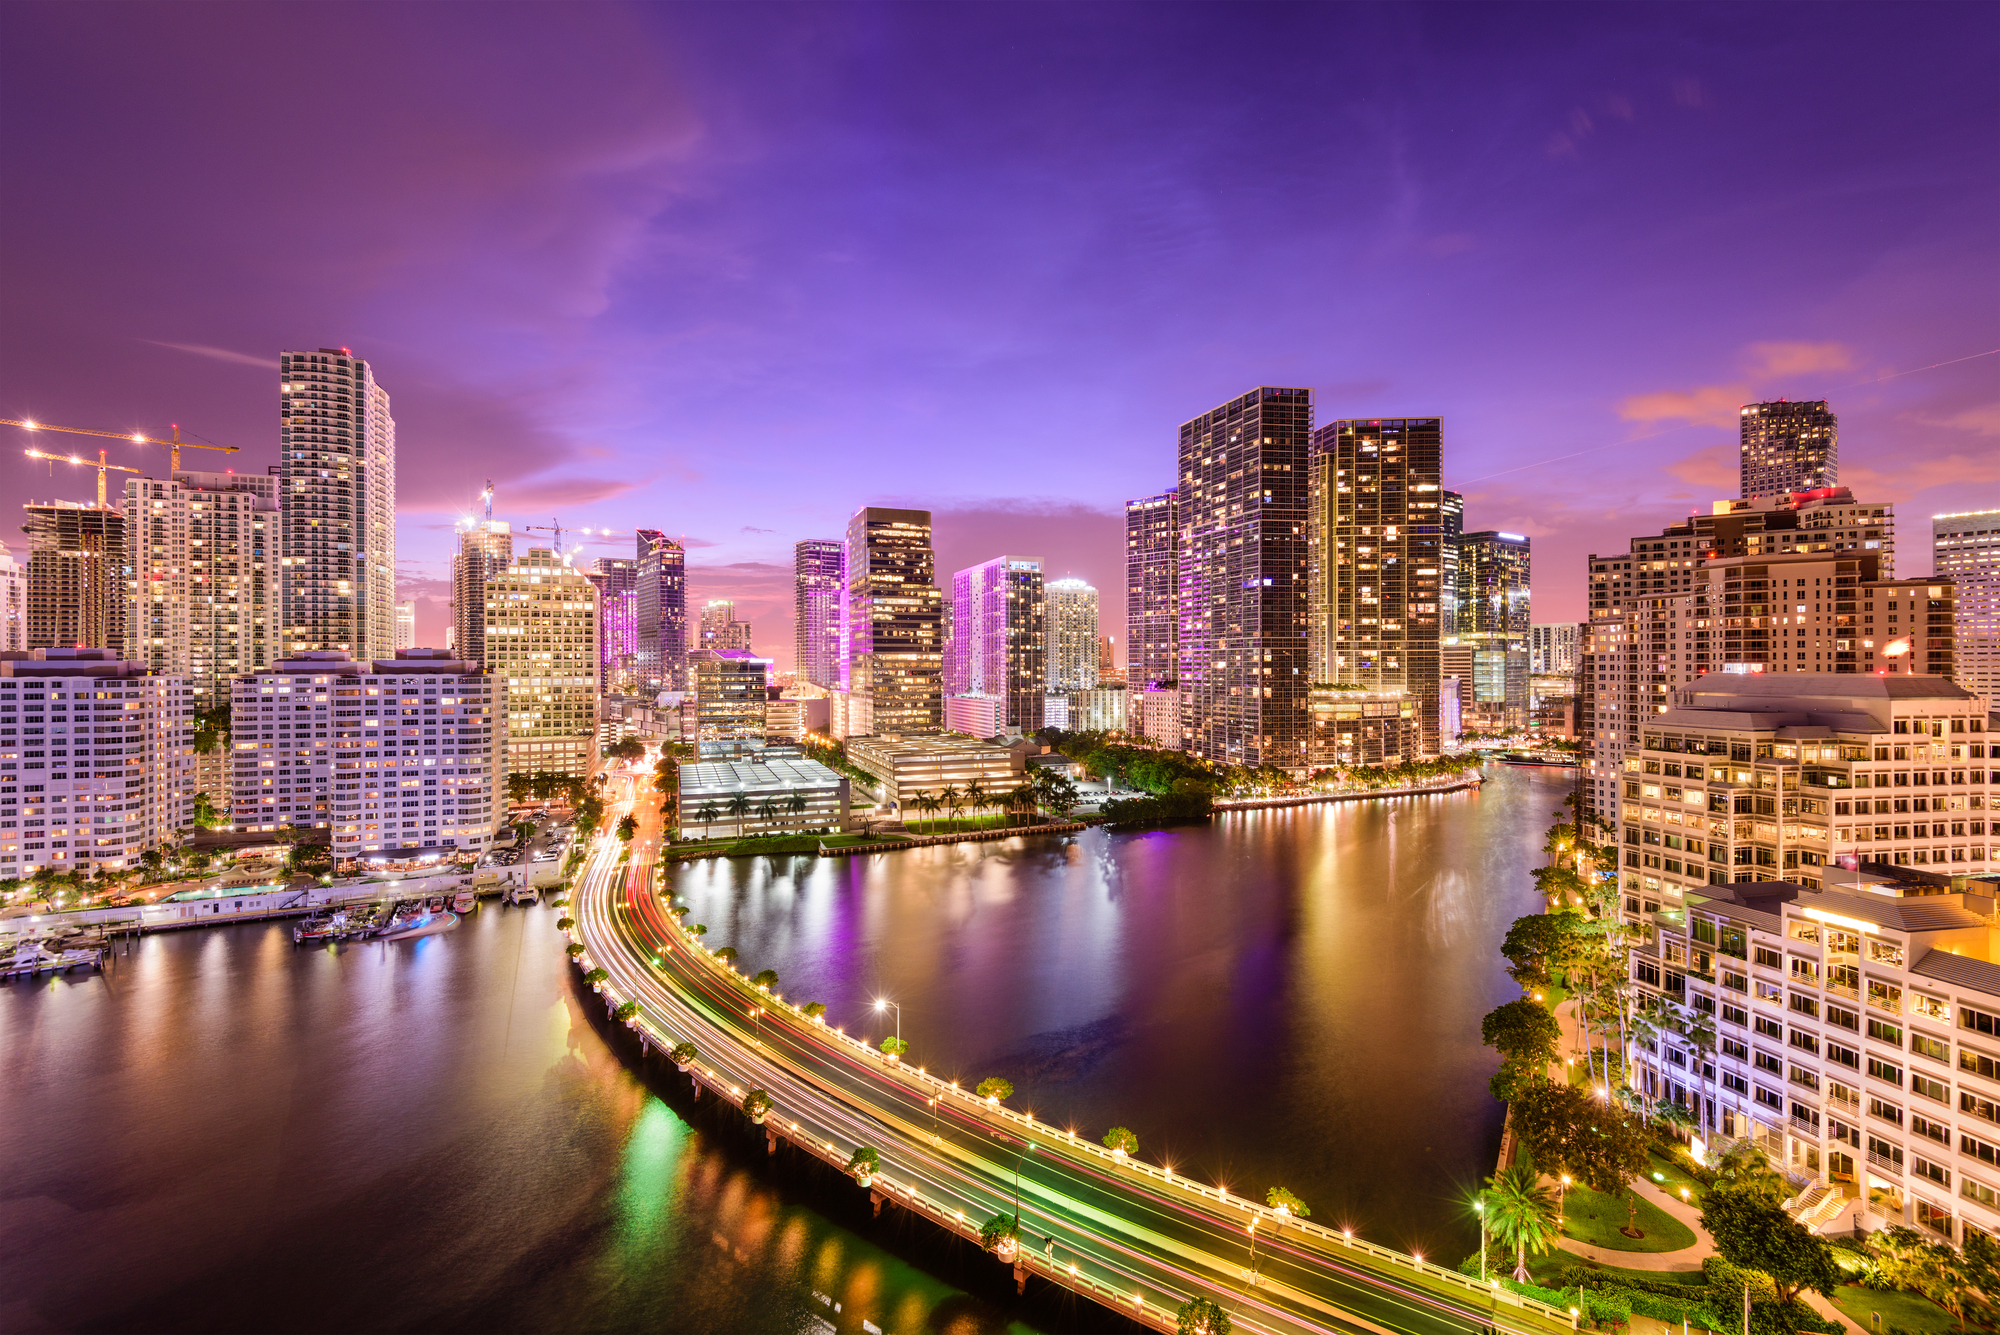 What to Expect When Hiring Our South Florida Luxury Transportation Company